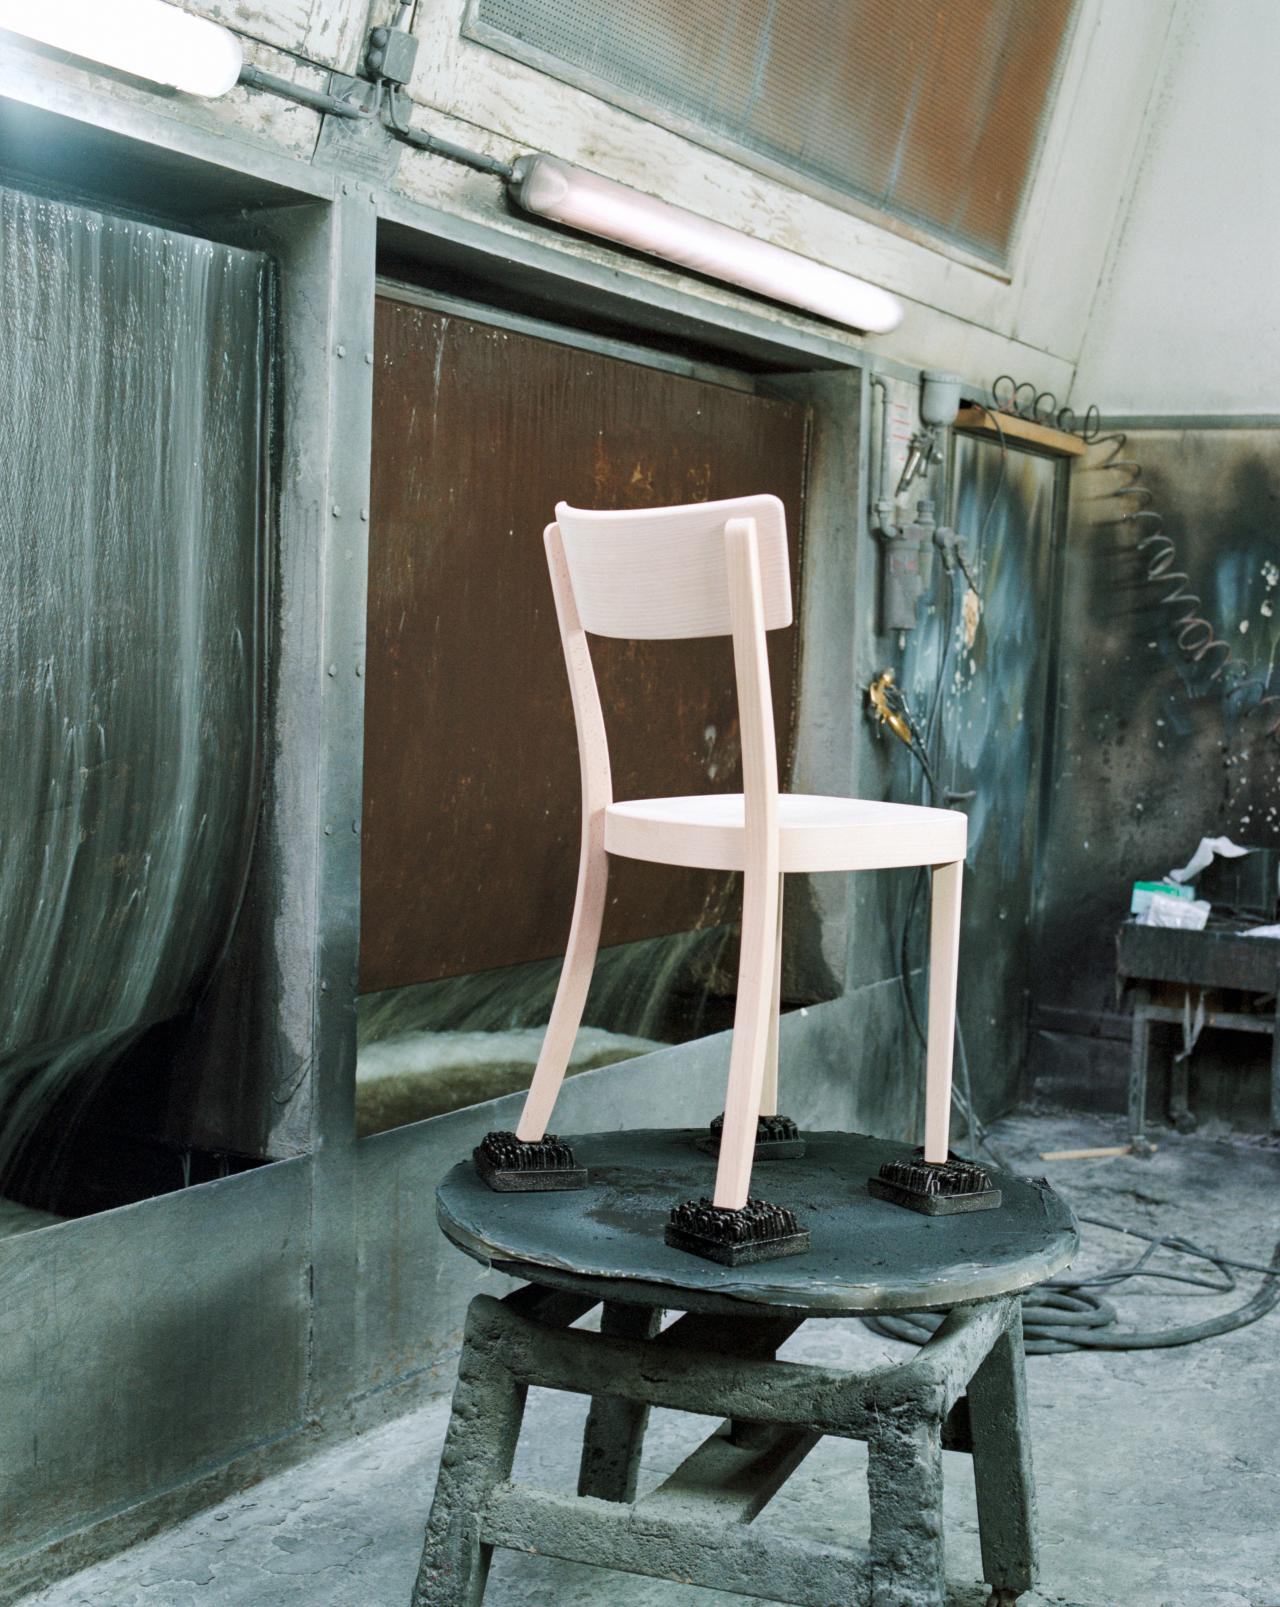 Chair on stool